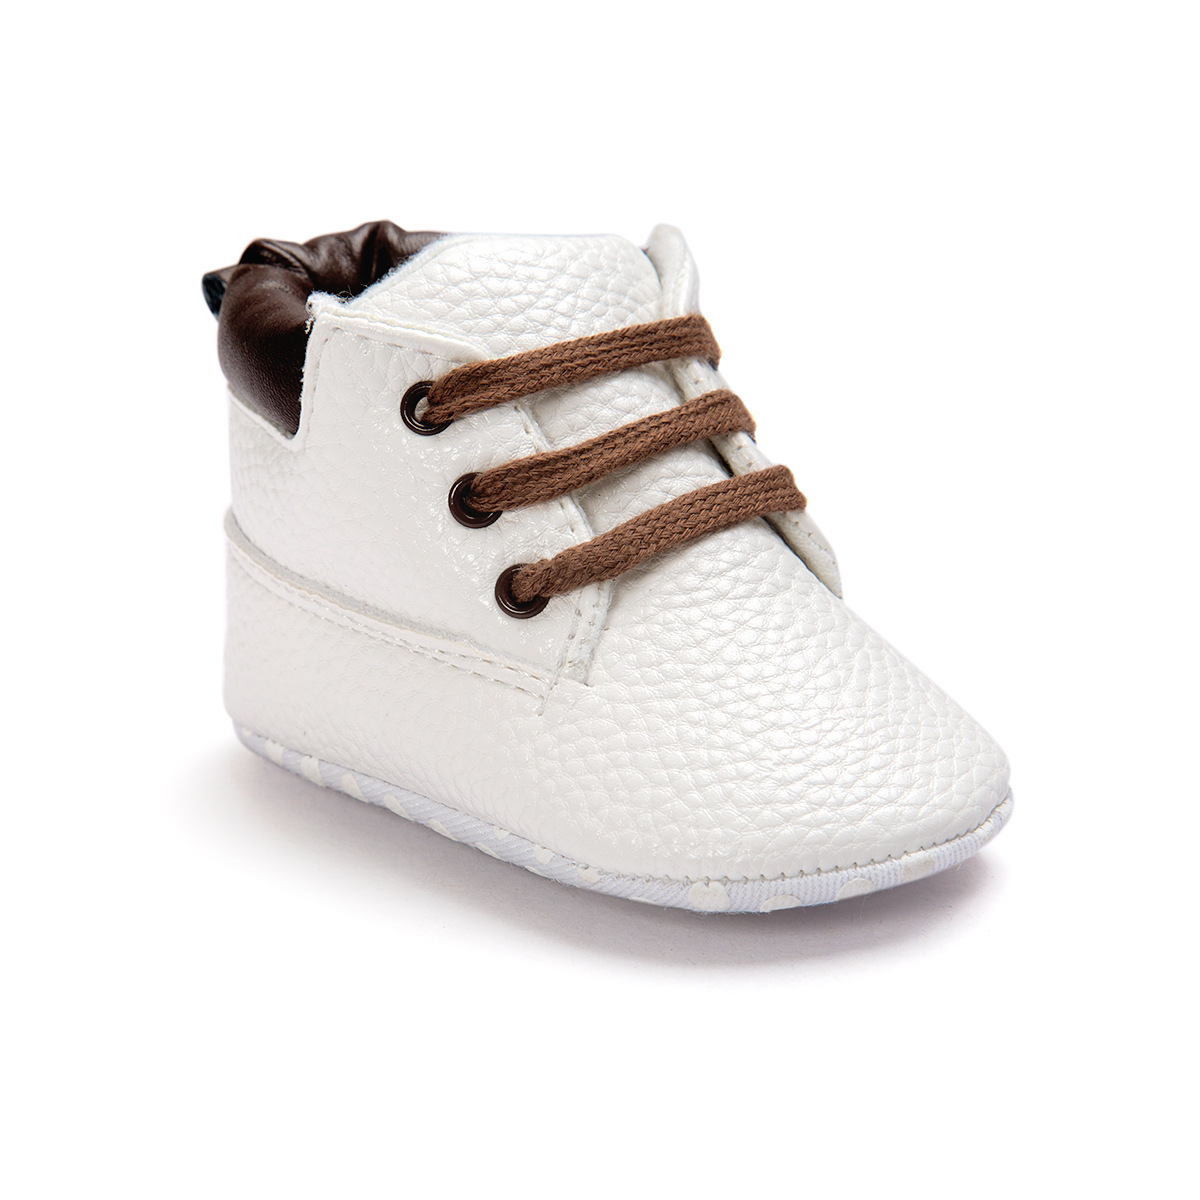 ROMIRUS-Baby-First-Walkers-Baby-Shoes-Soft-Bottom-Fashion-Tassels-Baby-Moccasin-Non-slip-PU-Leather-Prewalkers-Boots-3